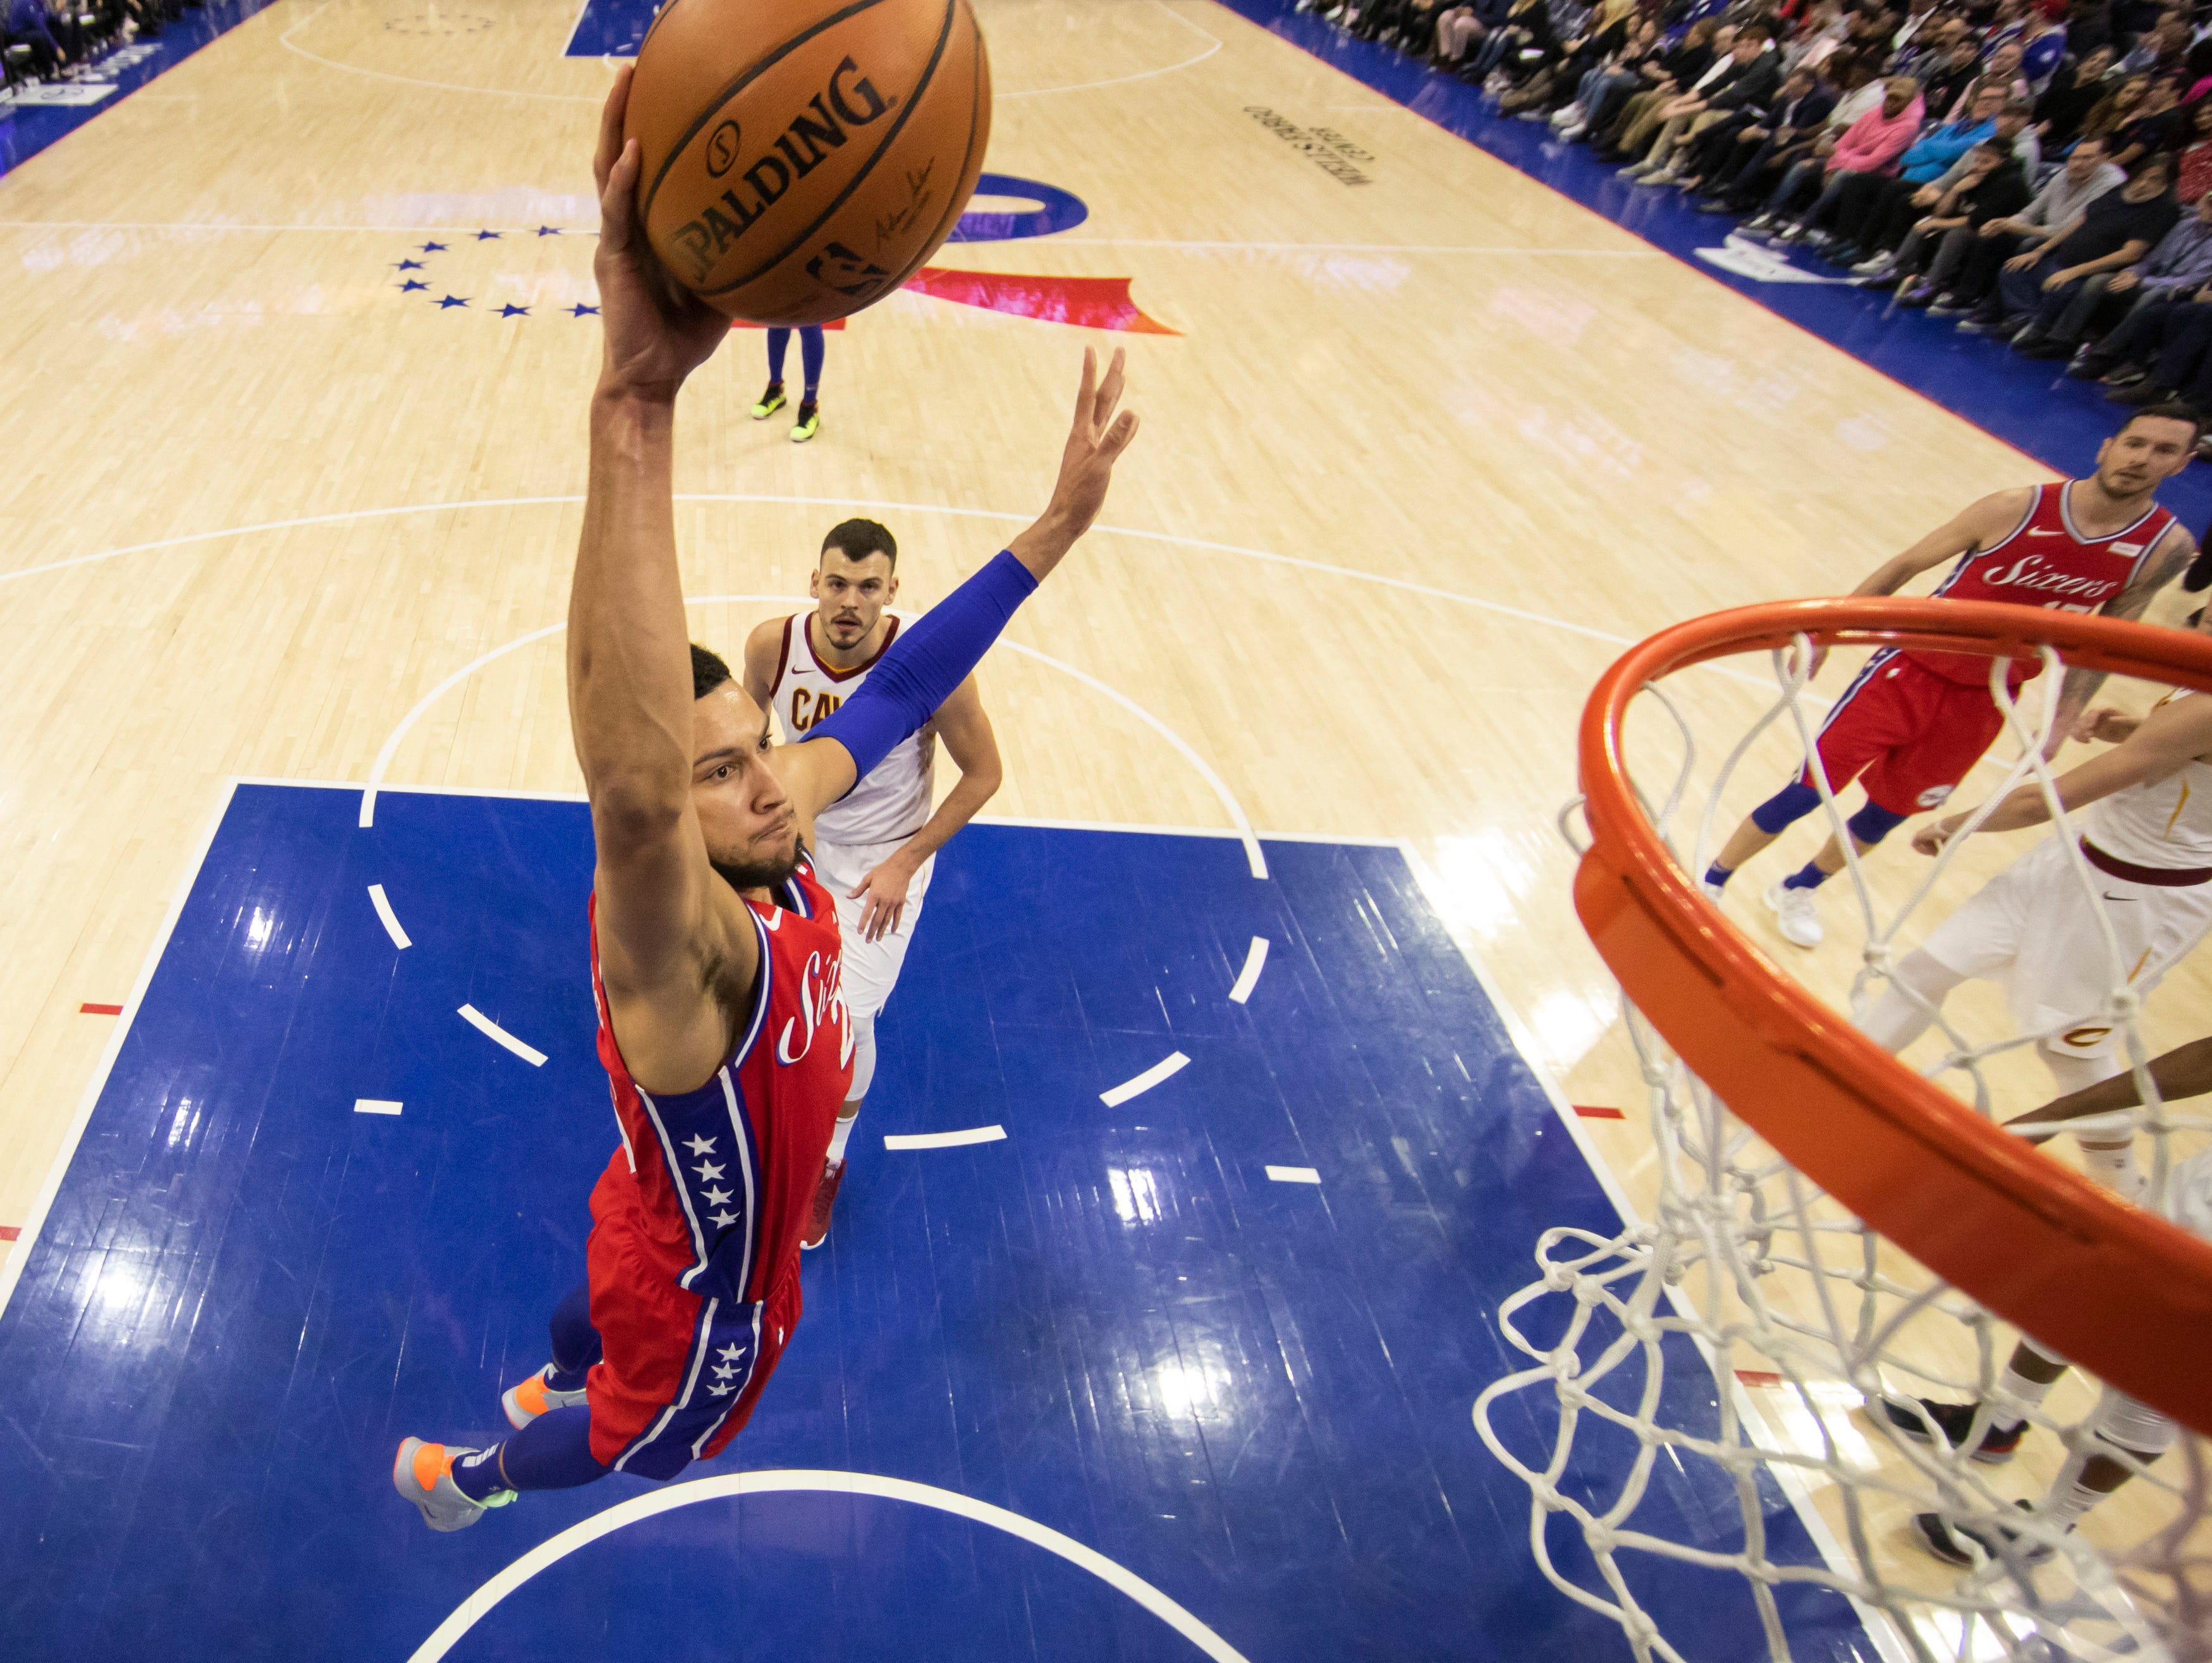 Philadelphia 76ers' Ben Simmons, of Australia, dunks during the second half of an NBA basketball game against the Cleveland Cavaliers, Tuesday, March 12, 2019, in Philadelphia. The 76ers won 106-99. (AP Photo/Chris Szagola)